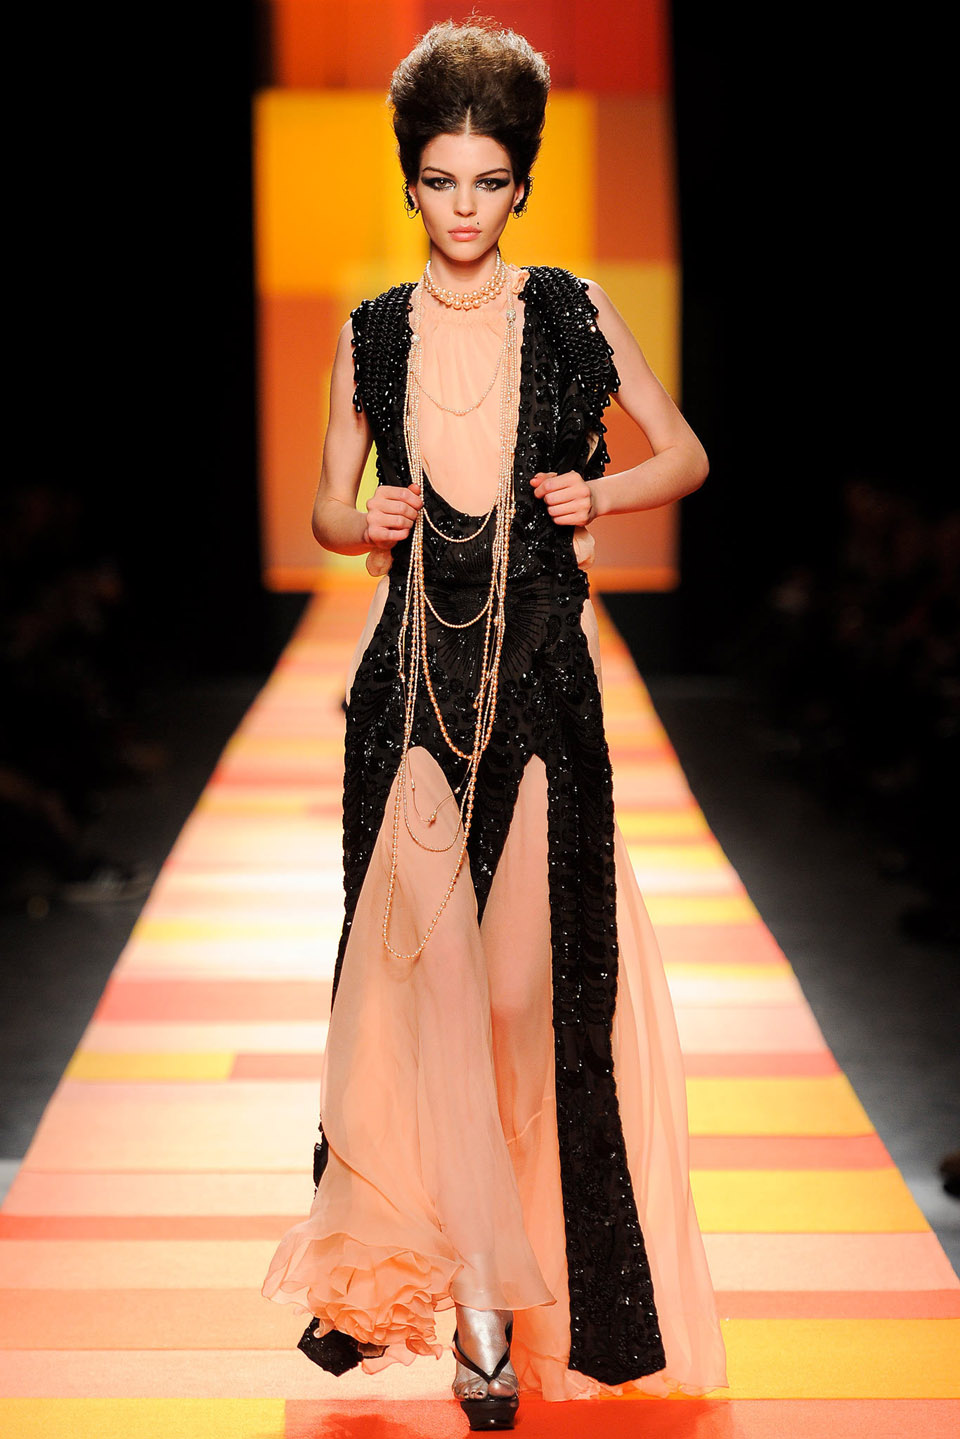 Jean Paul Gaultier Spring - Summer 2013, Haute Couture collection.18